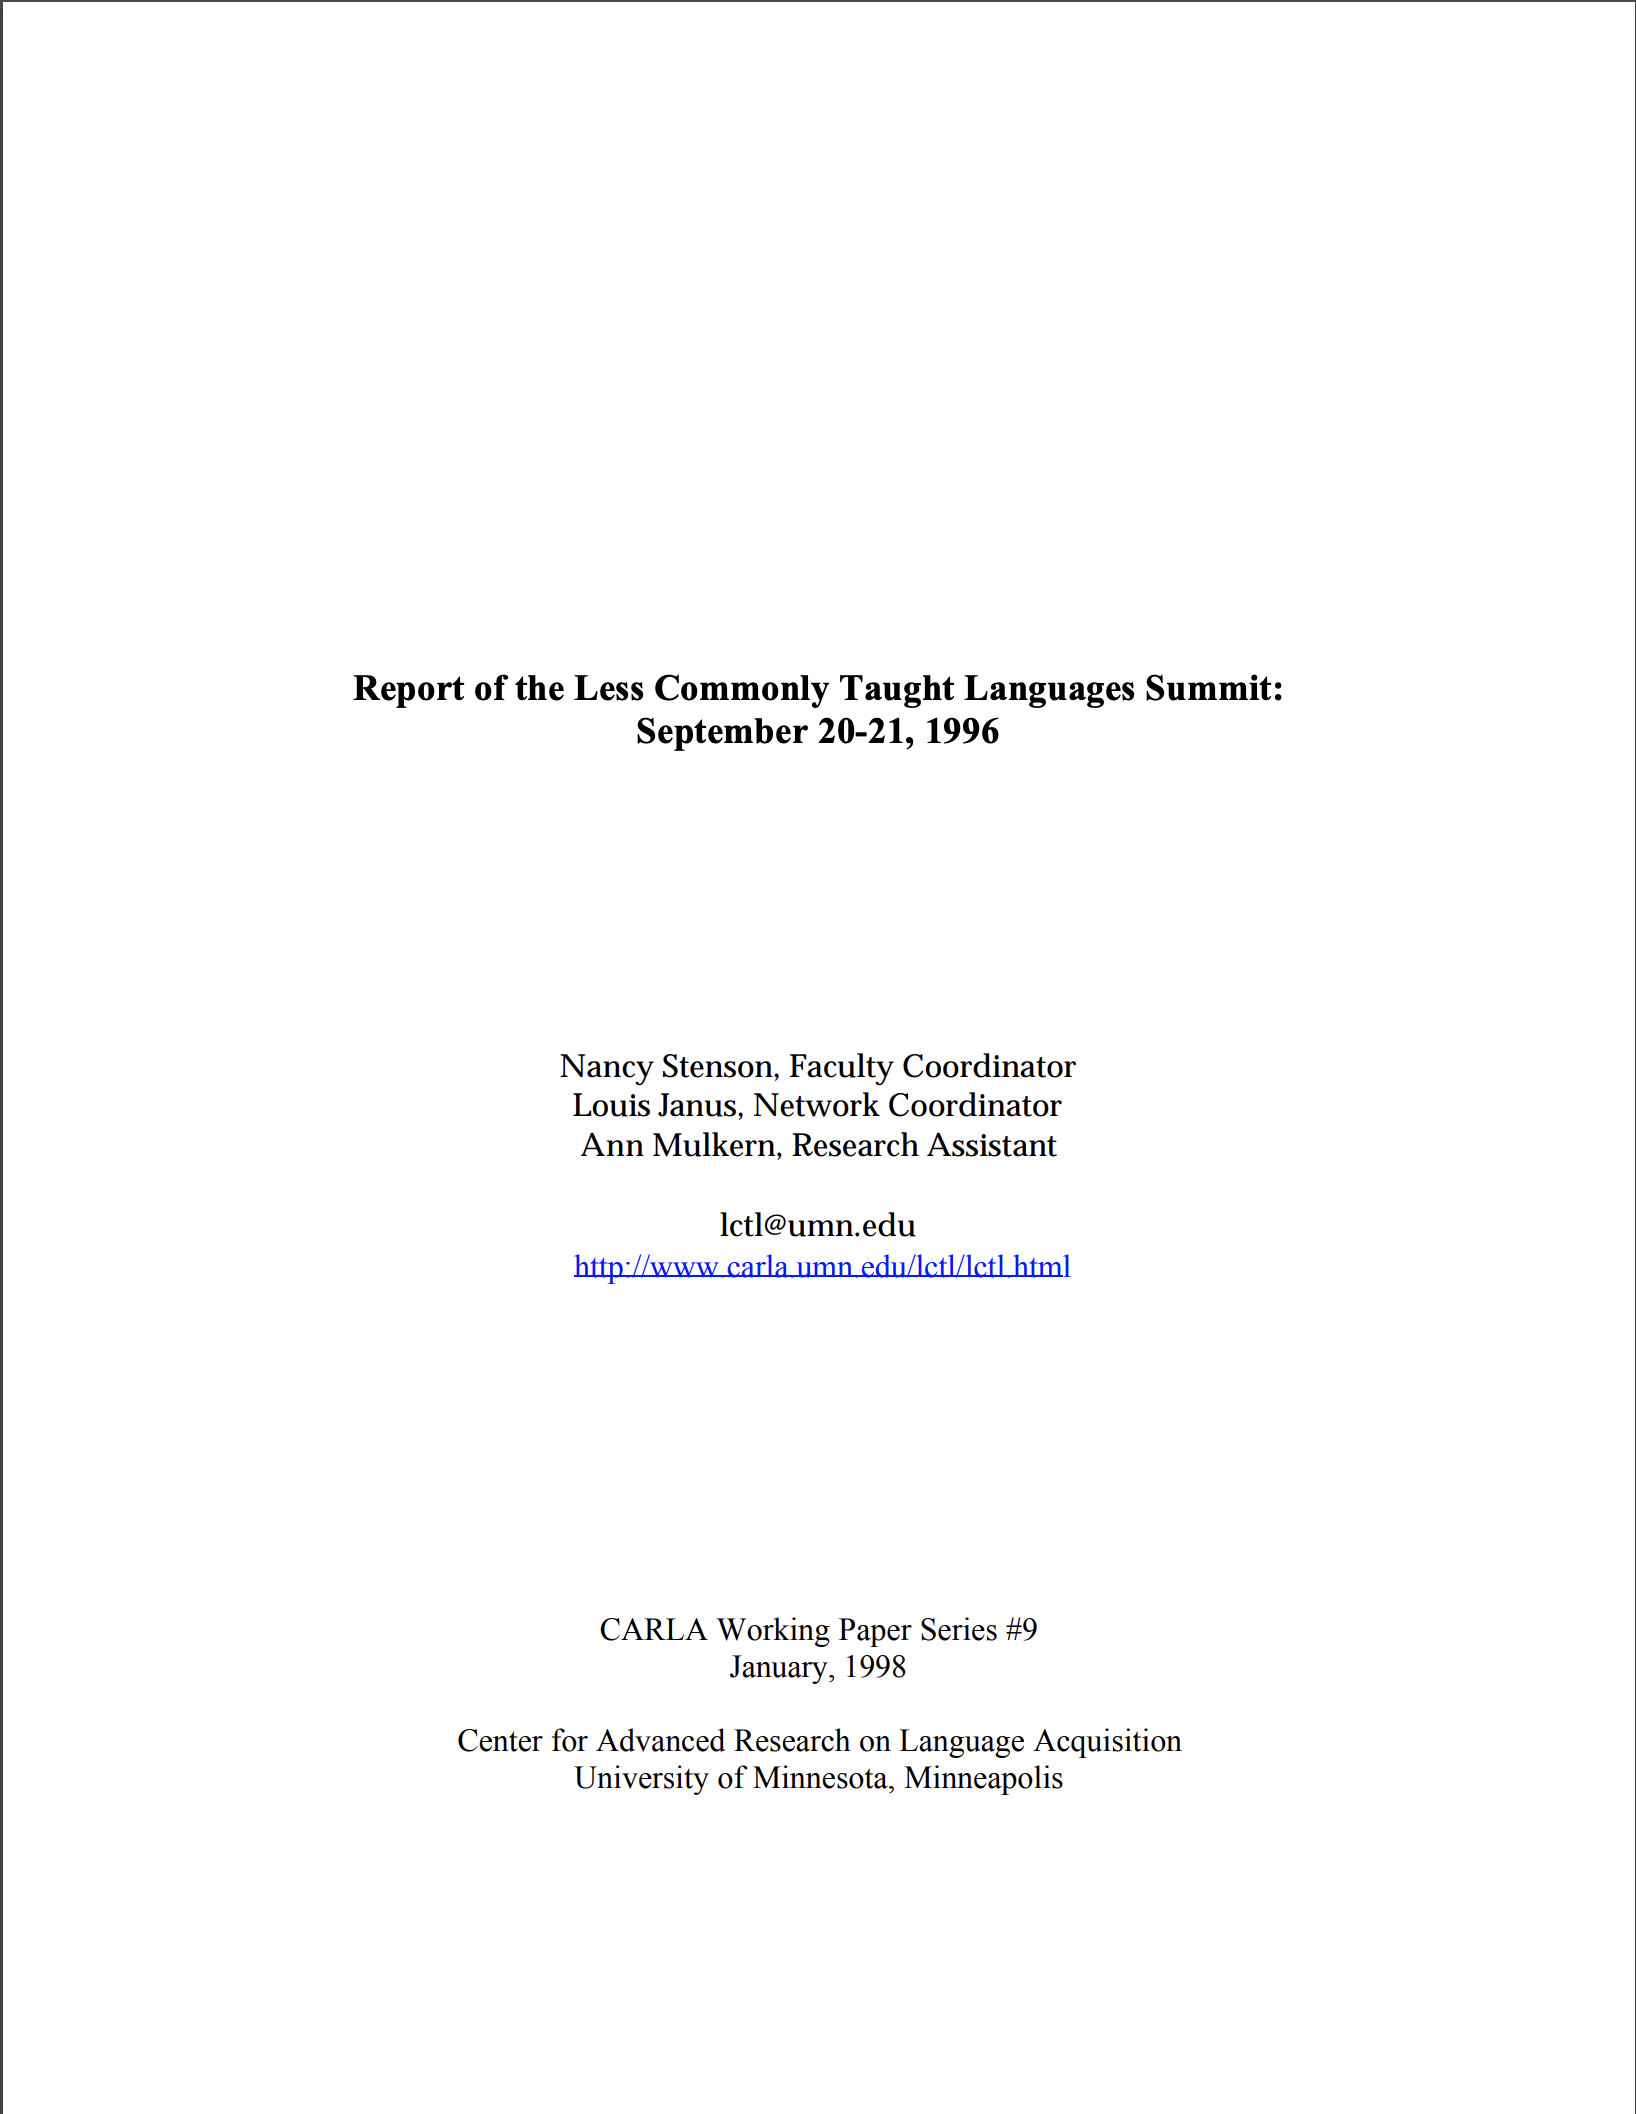 Report of the LCTL Summit: 1996